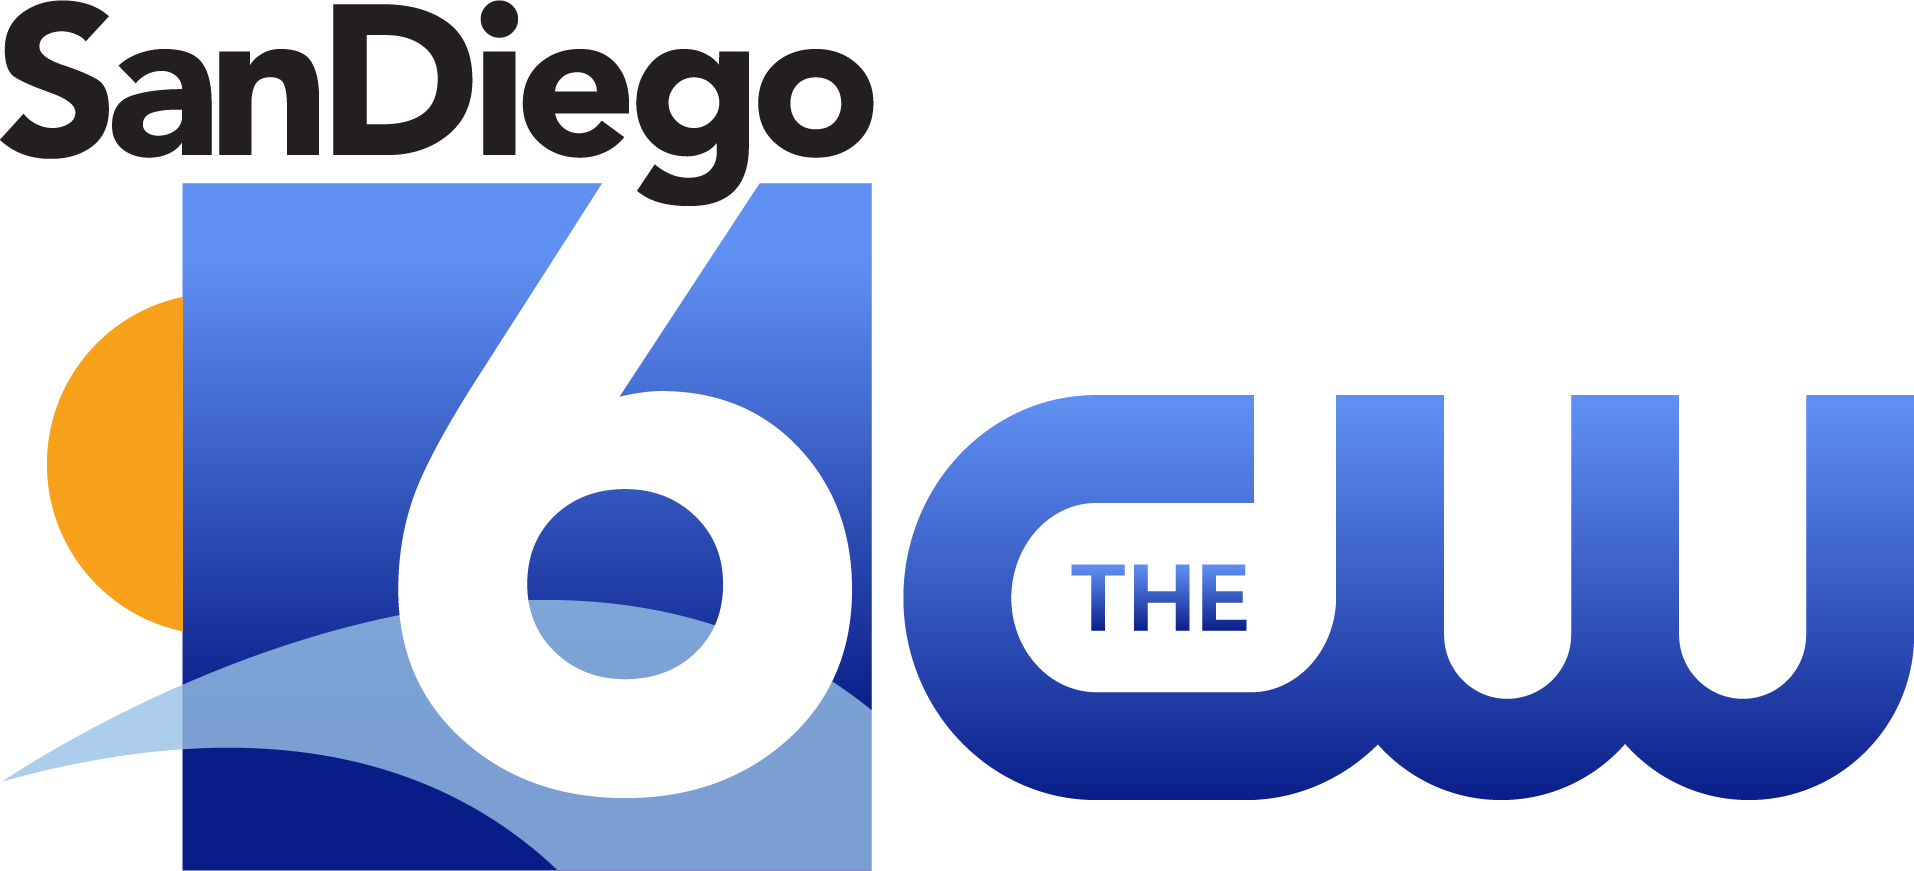 San Diego 6 - The CW